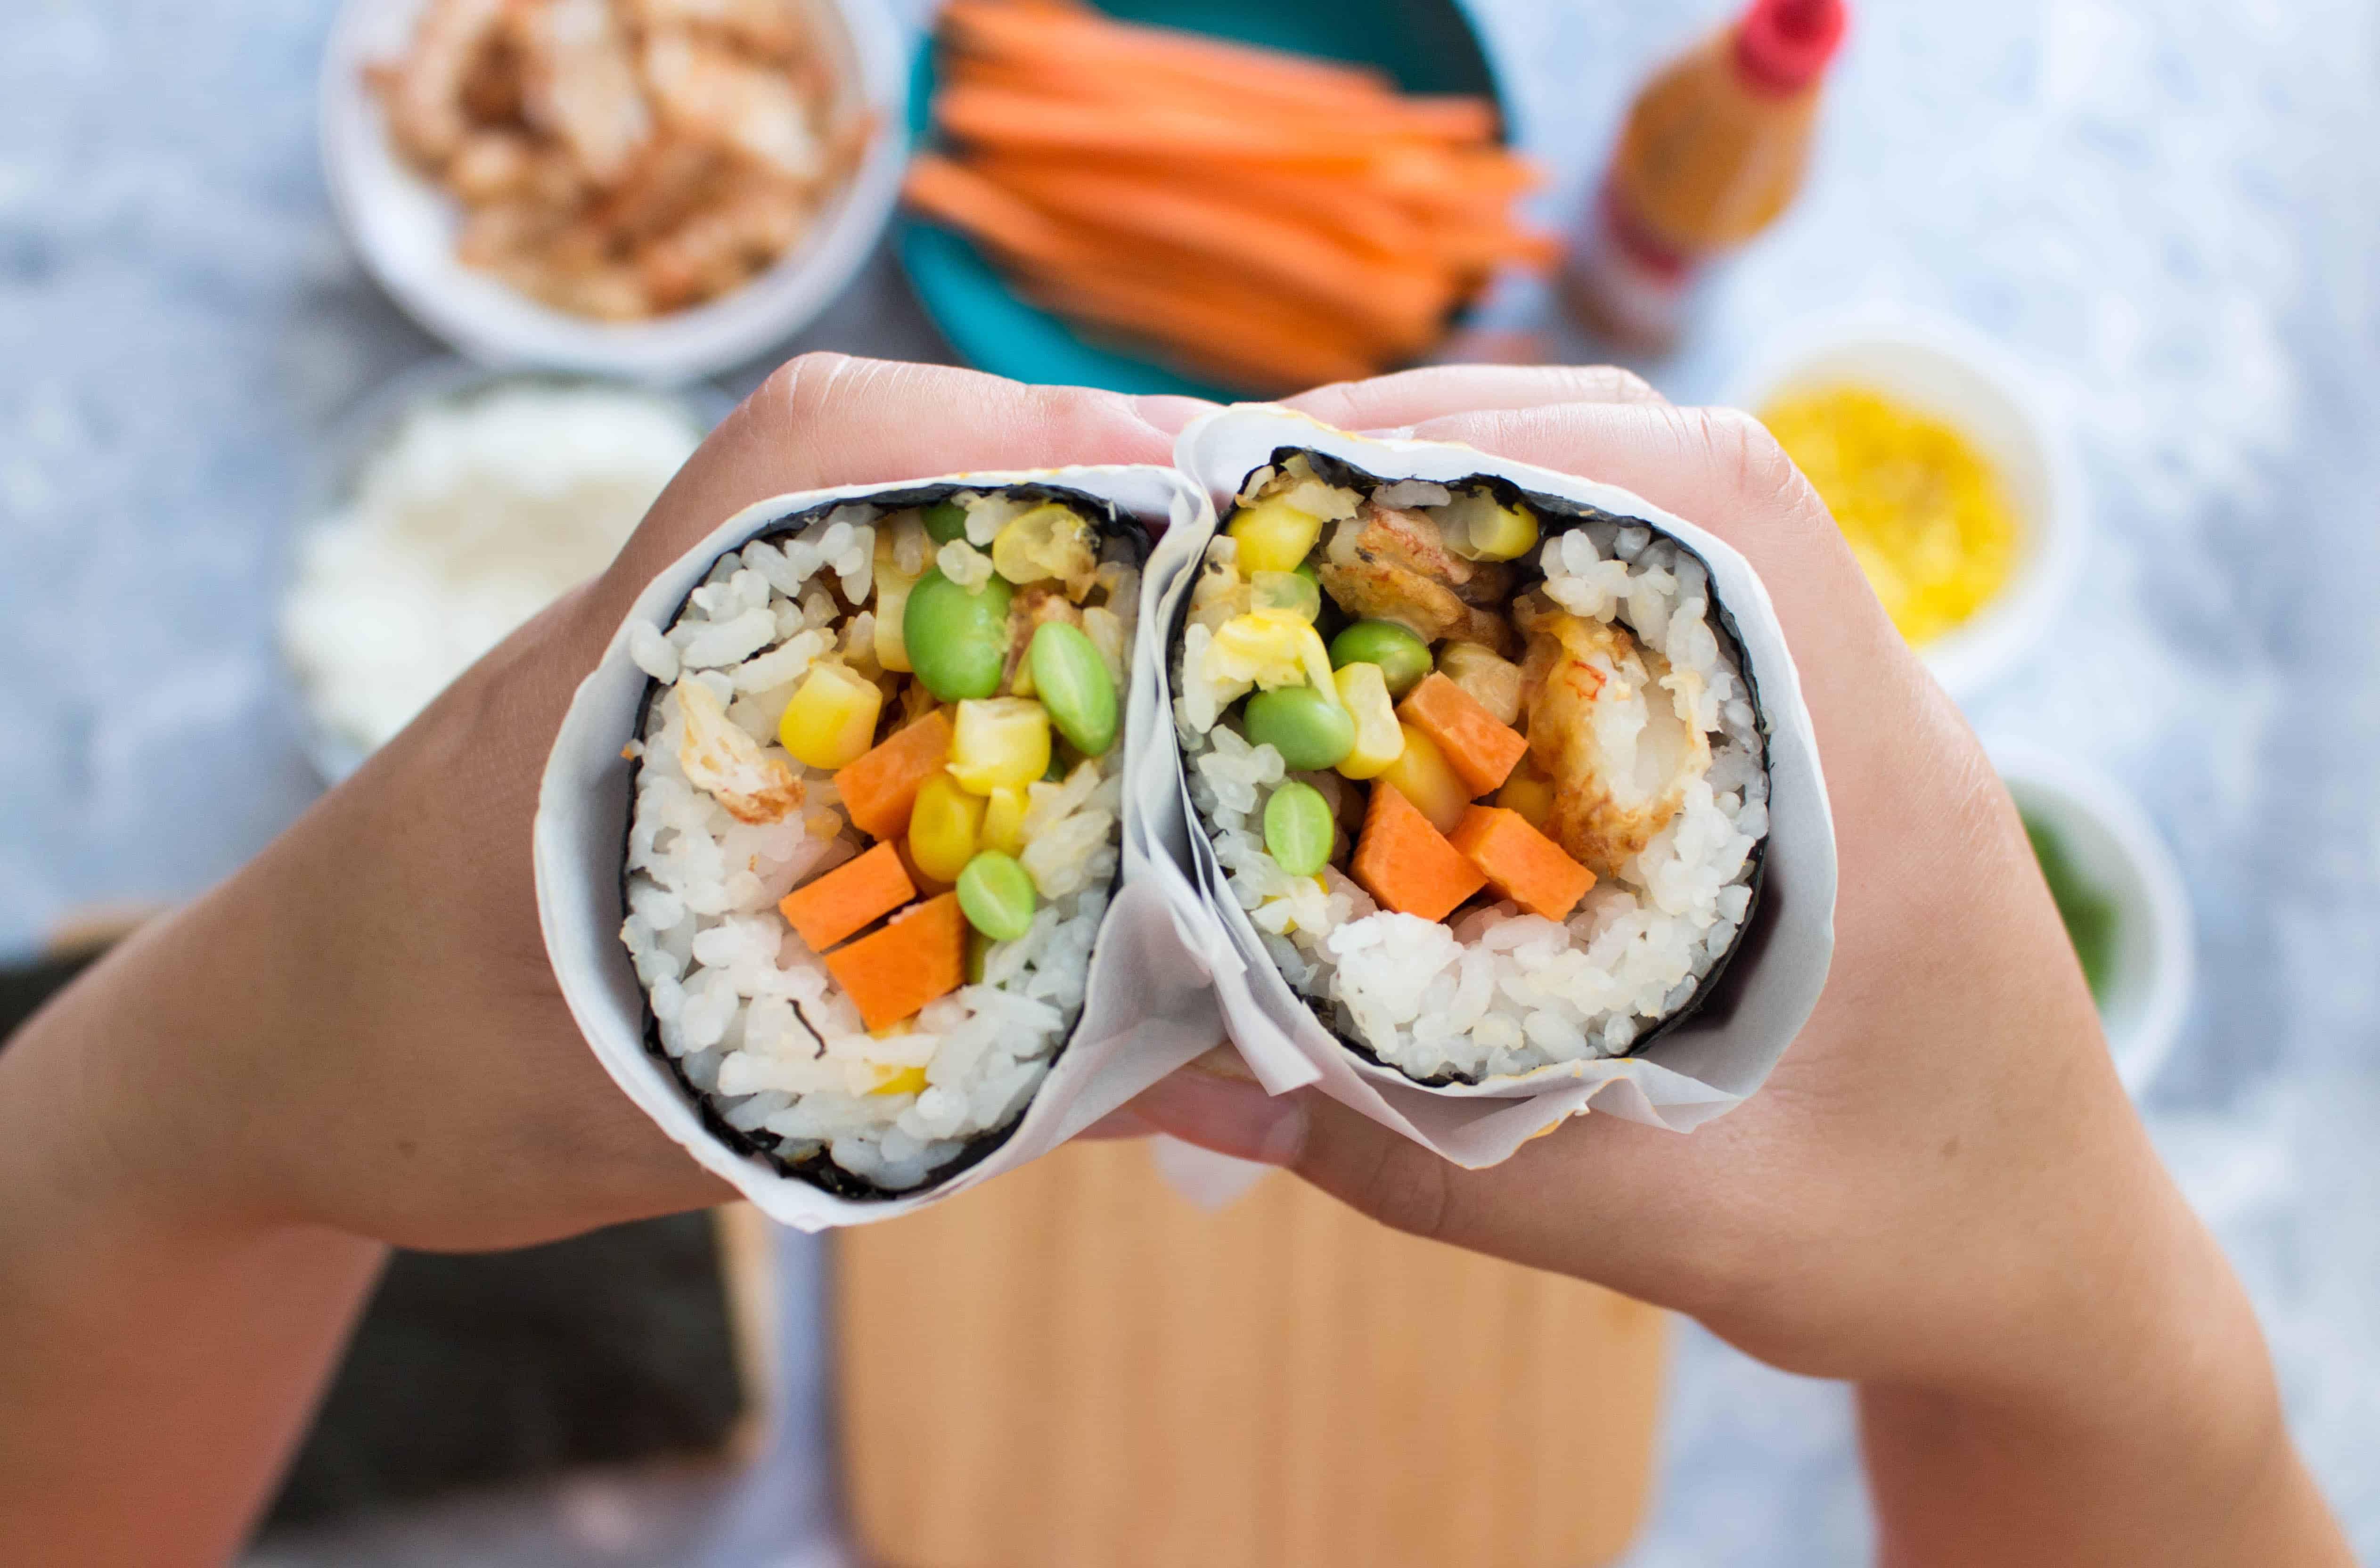 ThisAirFried Shrimp Tempura Sushi Burrito is the perfect lunch meal prep! Easy to grab and go, heat not required, and healthy, this sushi burrito will be your go-to lunch!